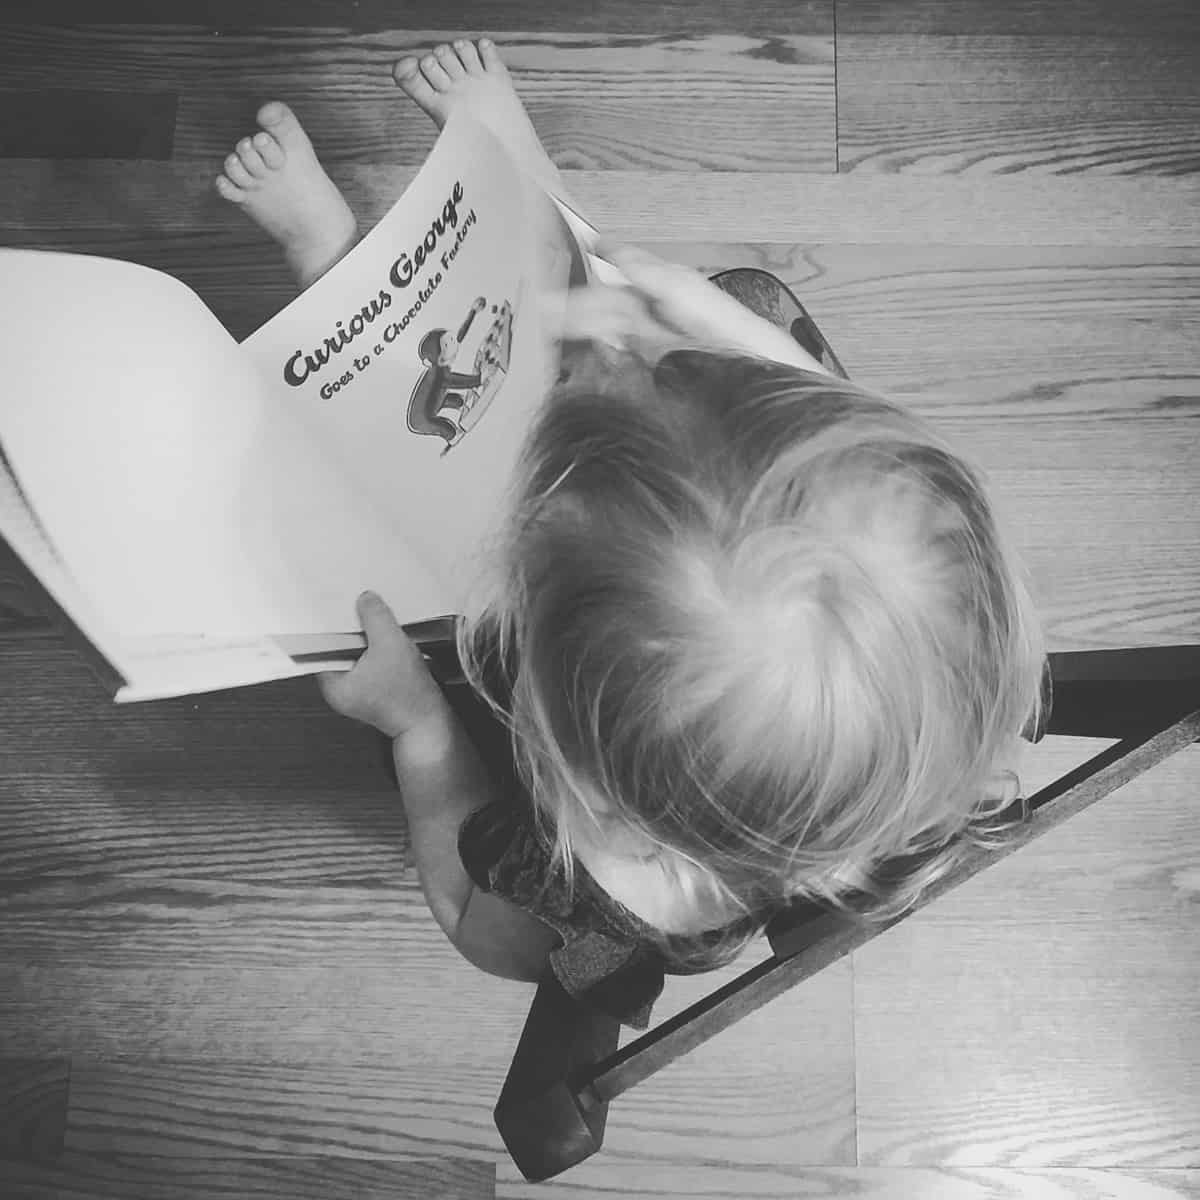 A photo of a child reading a Curious George book.